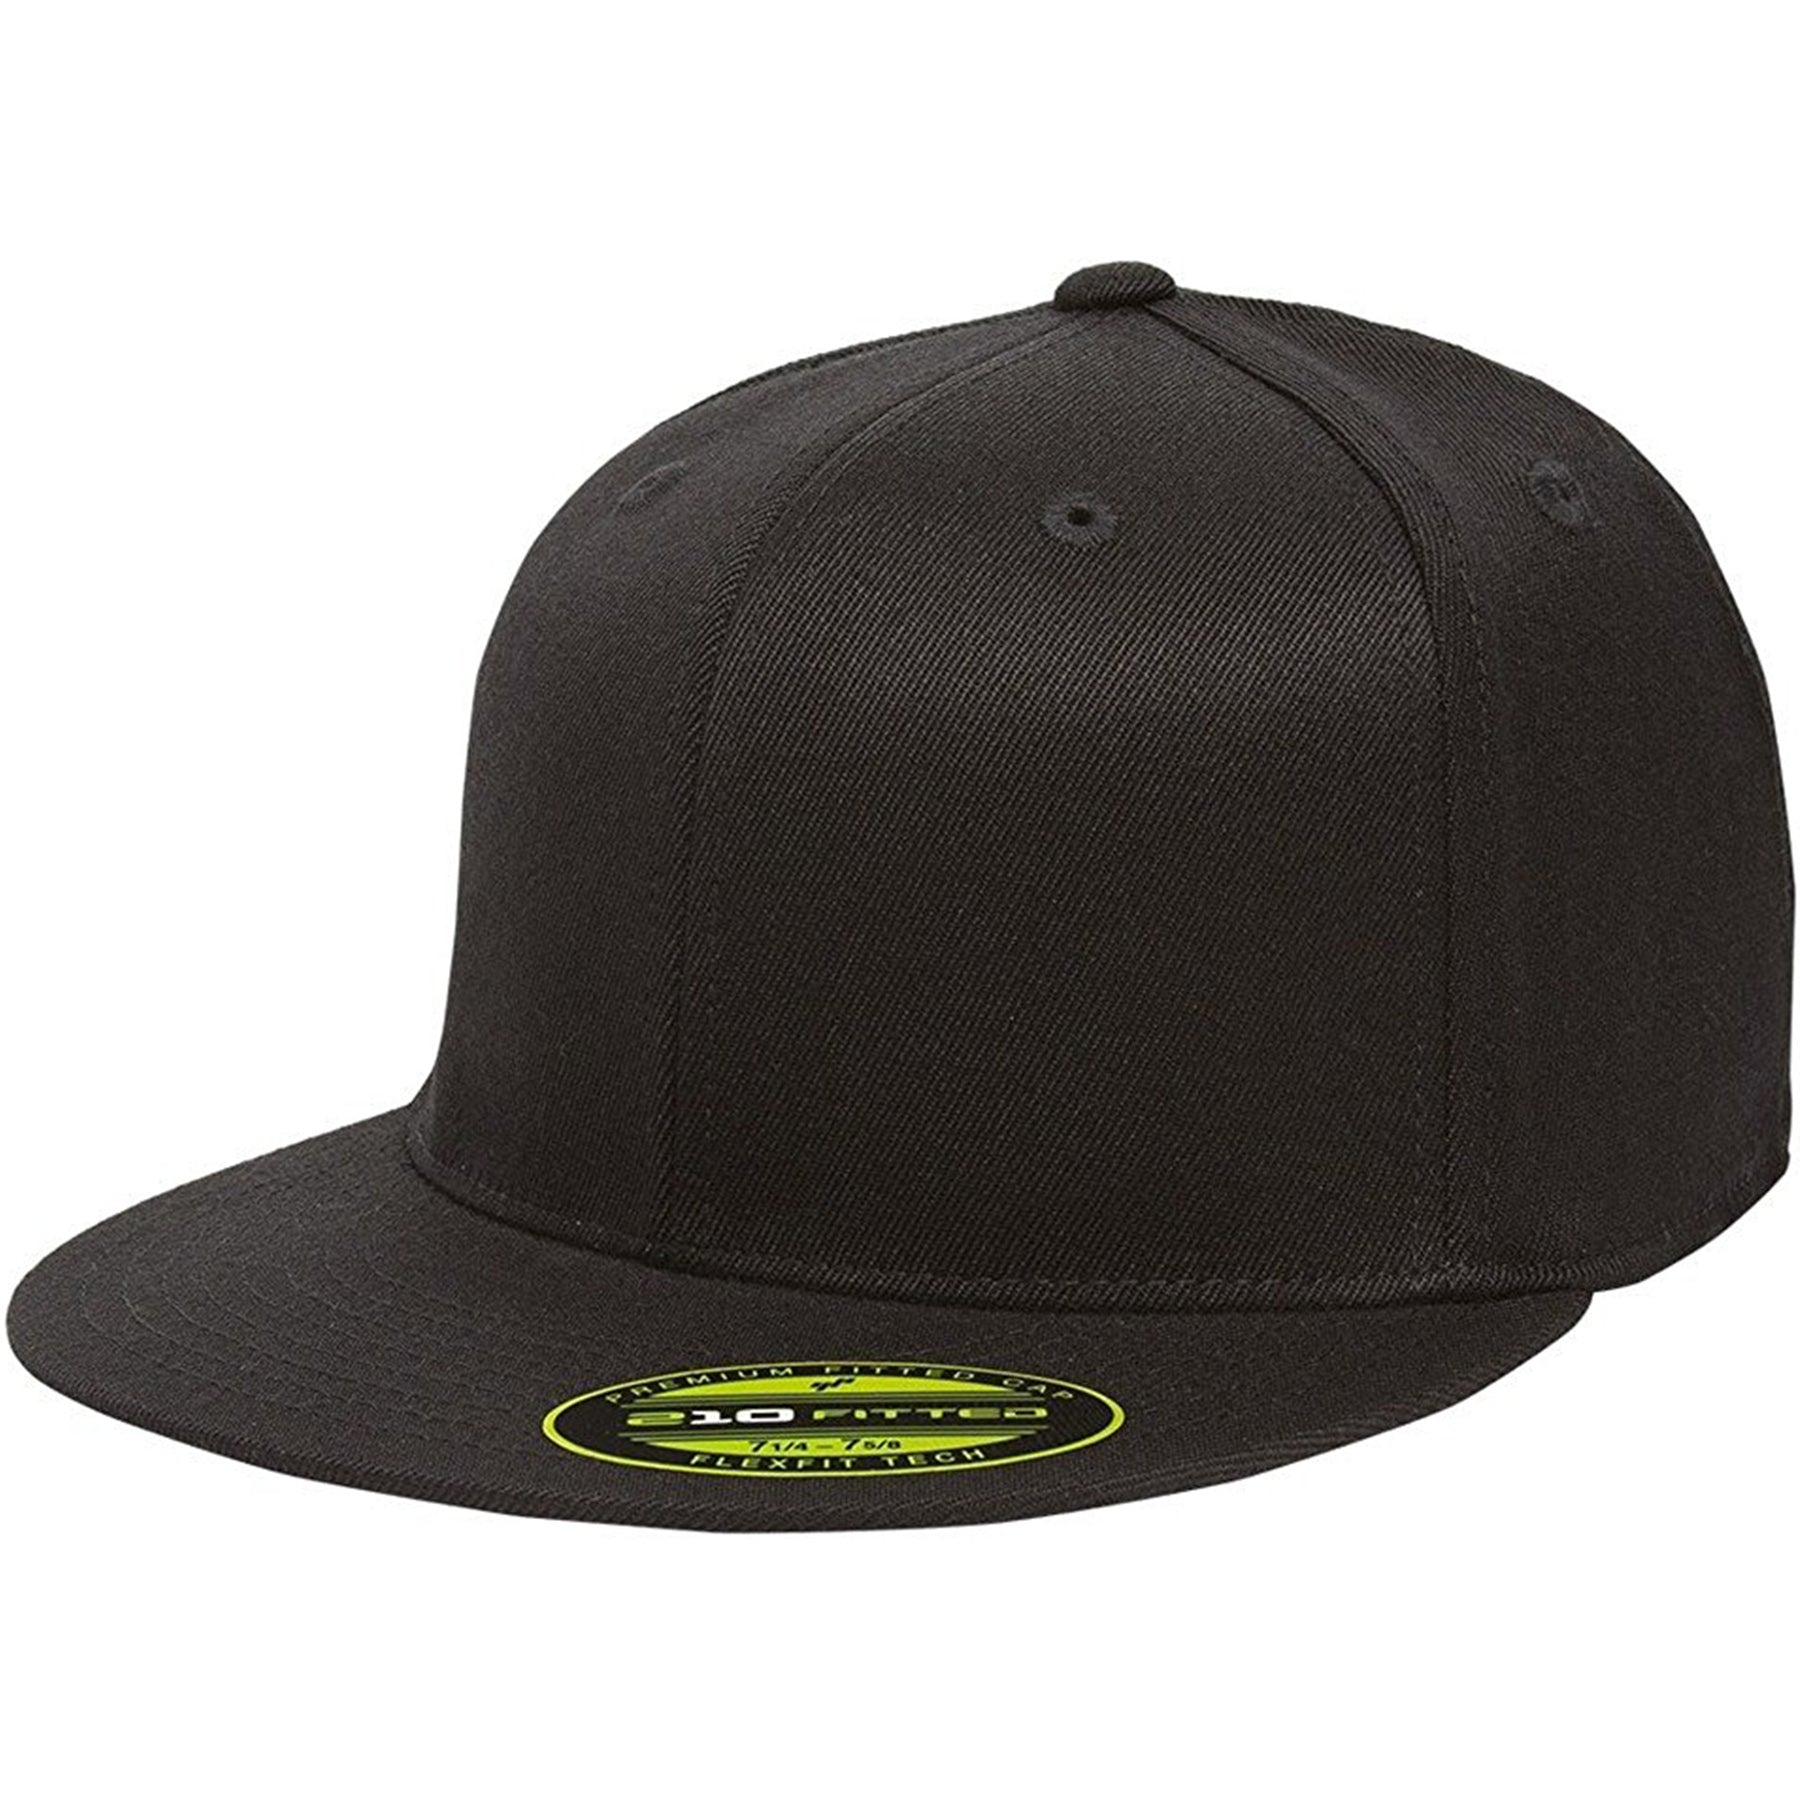 a8c1b7ad94420 the black flexfit flat brim stretch fit elastic fit fitted hat has a  structured crown